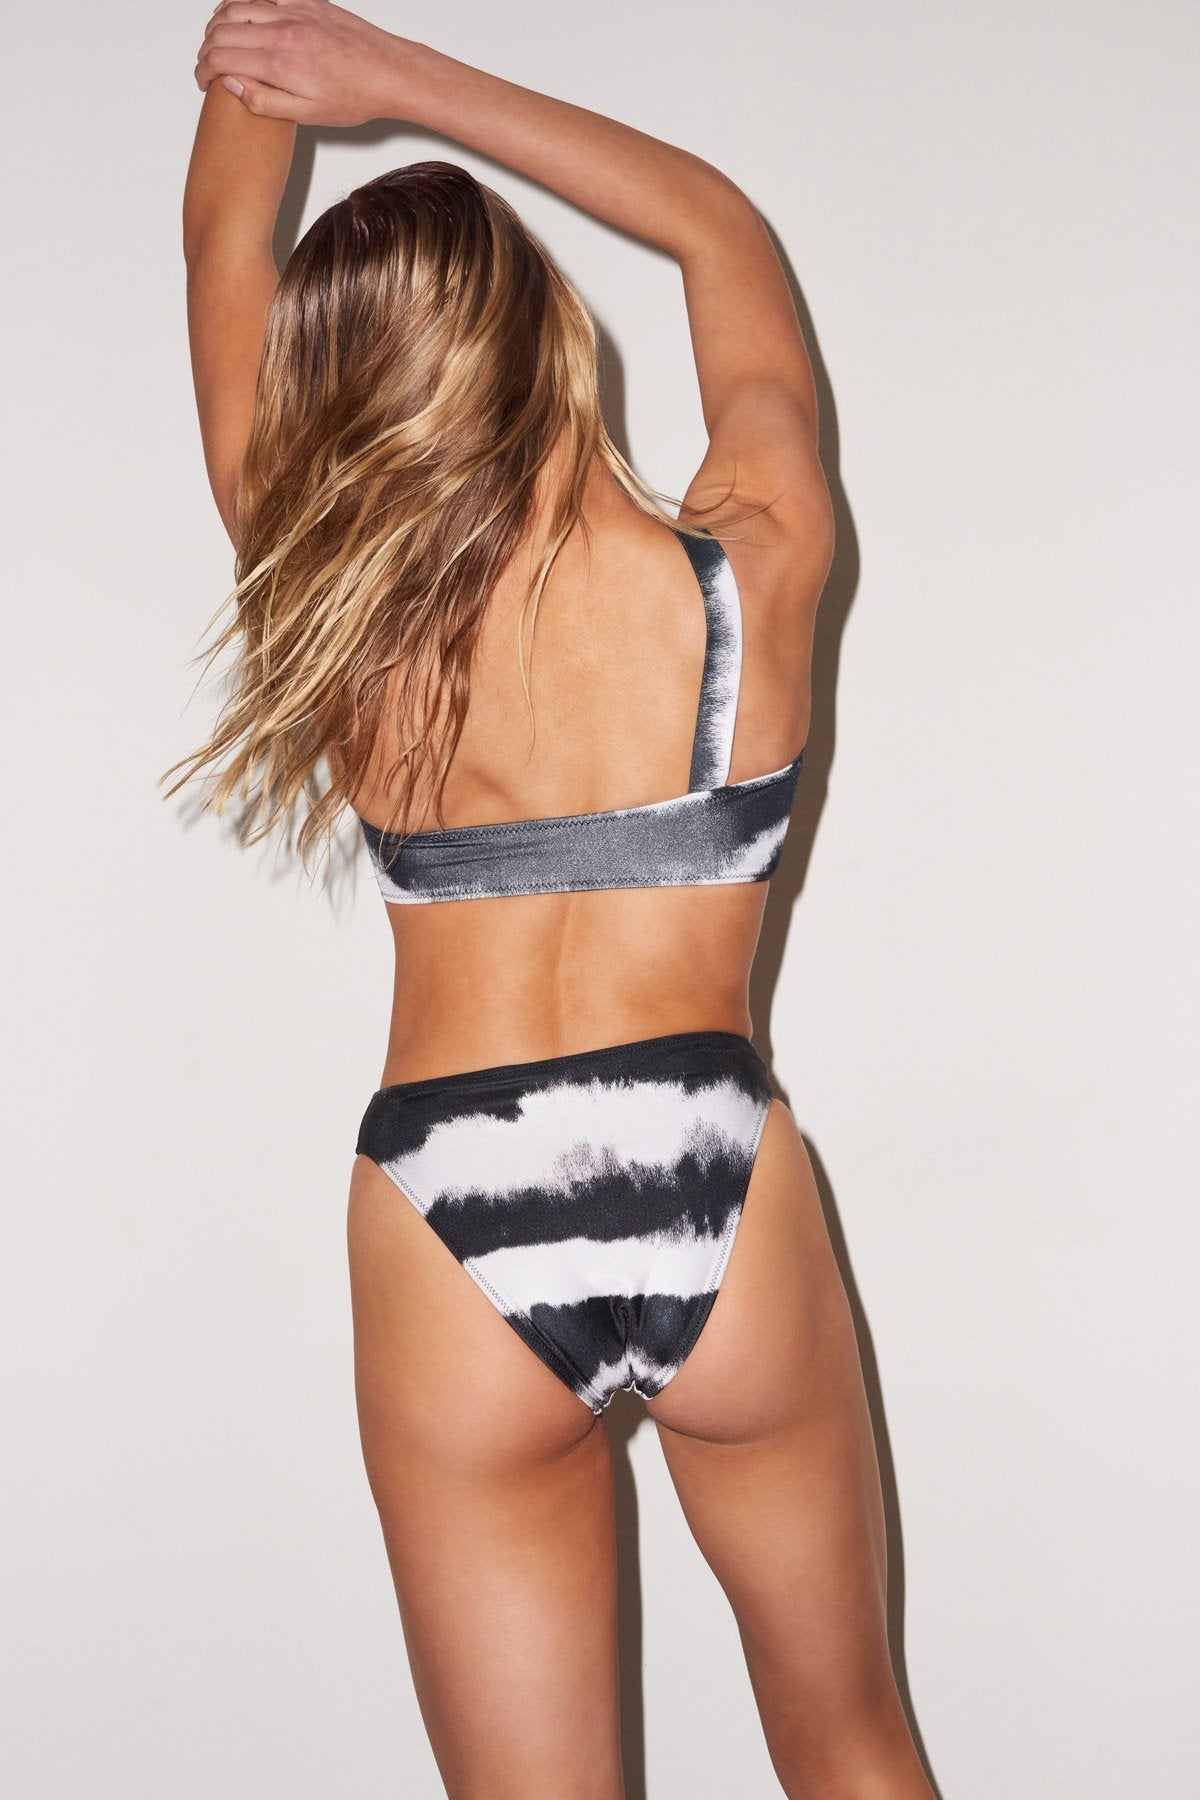 LNA Sorrento High Waist Bikini Bottom in black and white tie dye